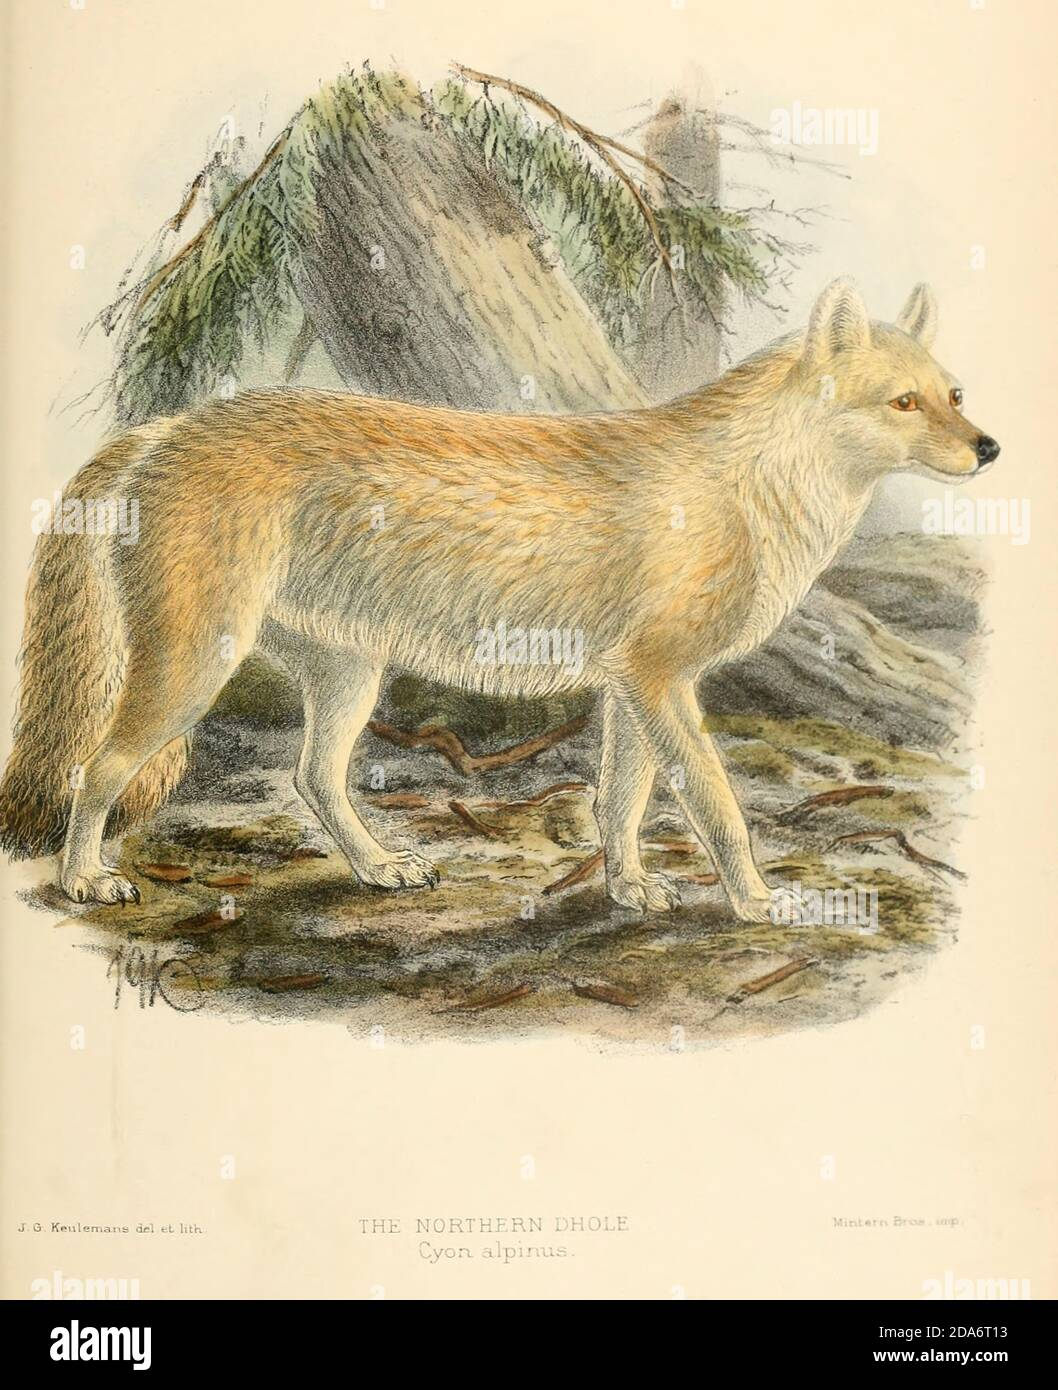 """The Tian Shan dhole (Cuon alpinus hesperius [Cyon alpinus]), also known as the Siberian dhole, western Asiatic dhole, or northern dhole is a subspecies of dhole native to the Altai and Tian Shan mountain ranges, and possibly Pamir and Kashmir. From the Book Dogs, Jackals, Wolves and Foxes A Monograph of The Canidae [from Latin, canis, """"dog"""") is a biological family of dog-like carnivorans. A member of this family is called a canid] By George Mivart, F.R.S. with woodcuts and 45 coloured plates drawn from nature by J. G. Keulemans and Hand-Coloured. Published by R. H. Porter, London, 1890 Stock Photo"""